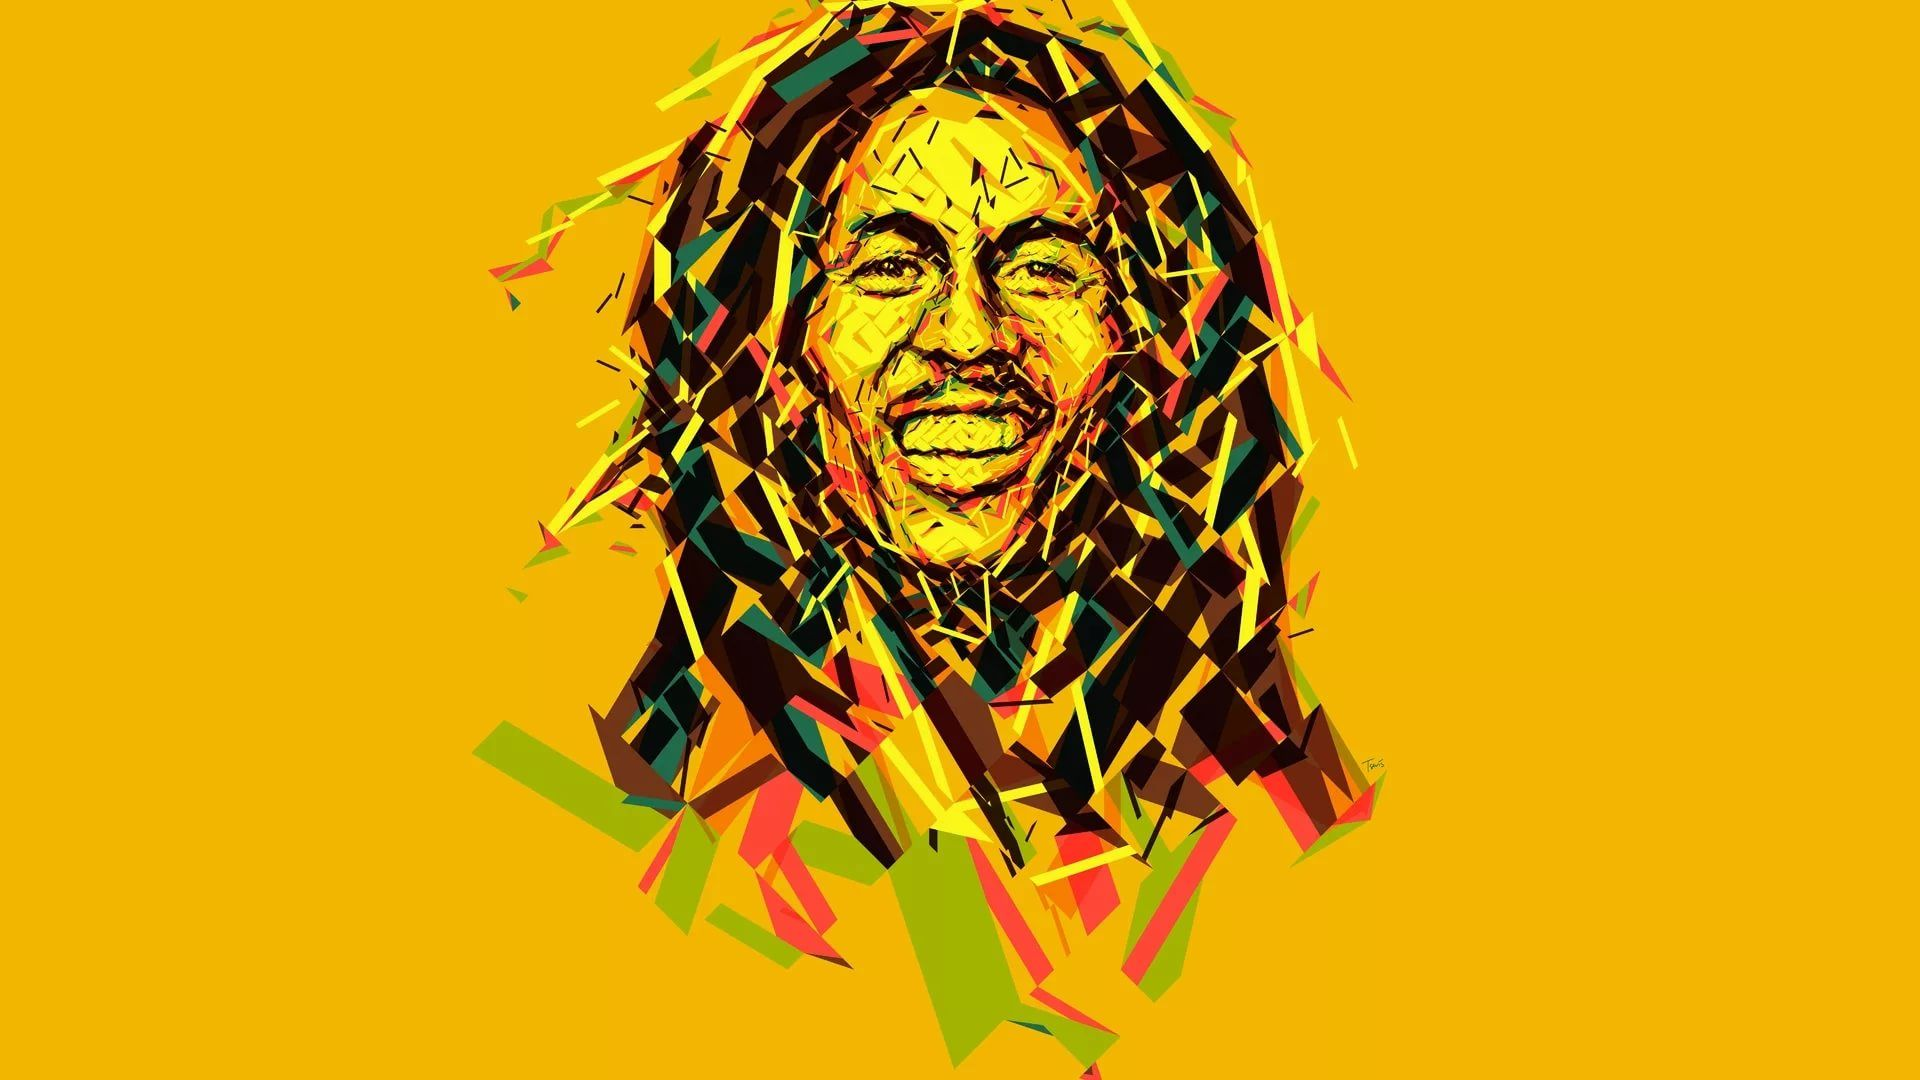 Bob Marley full wallpaper